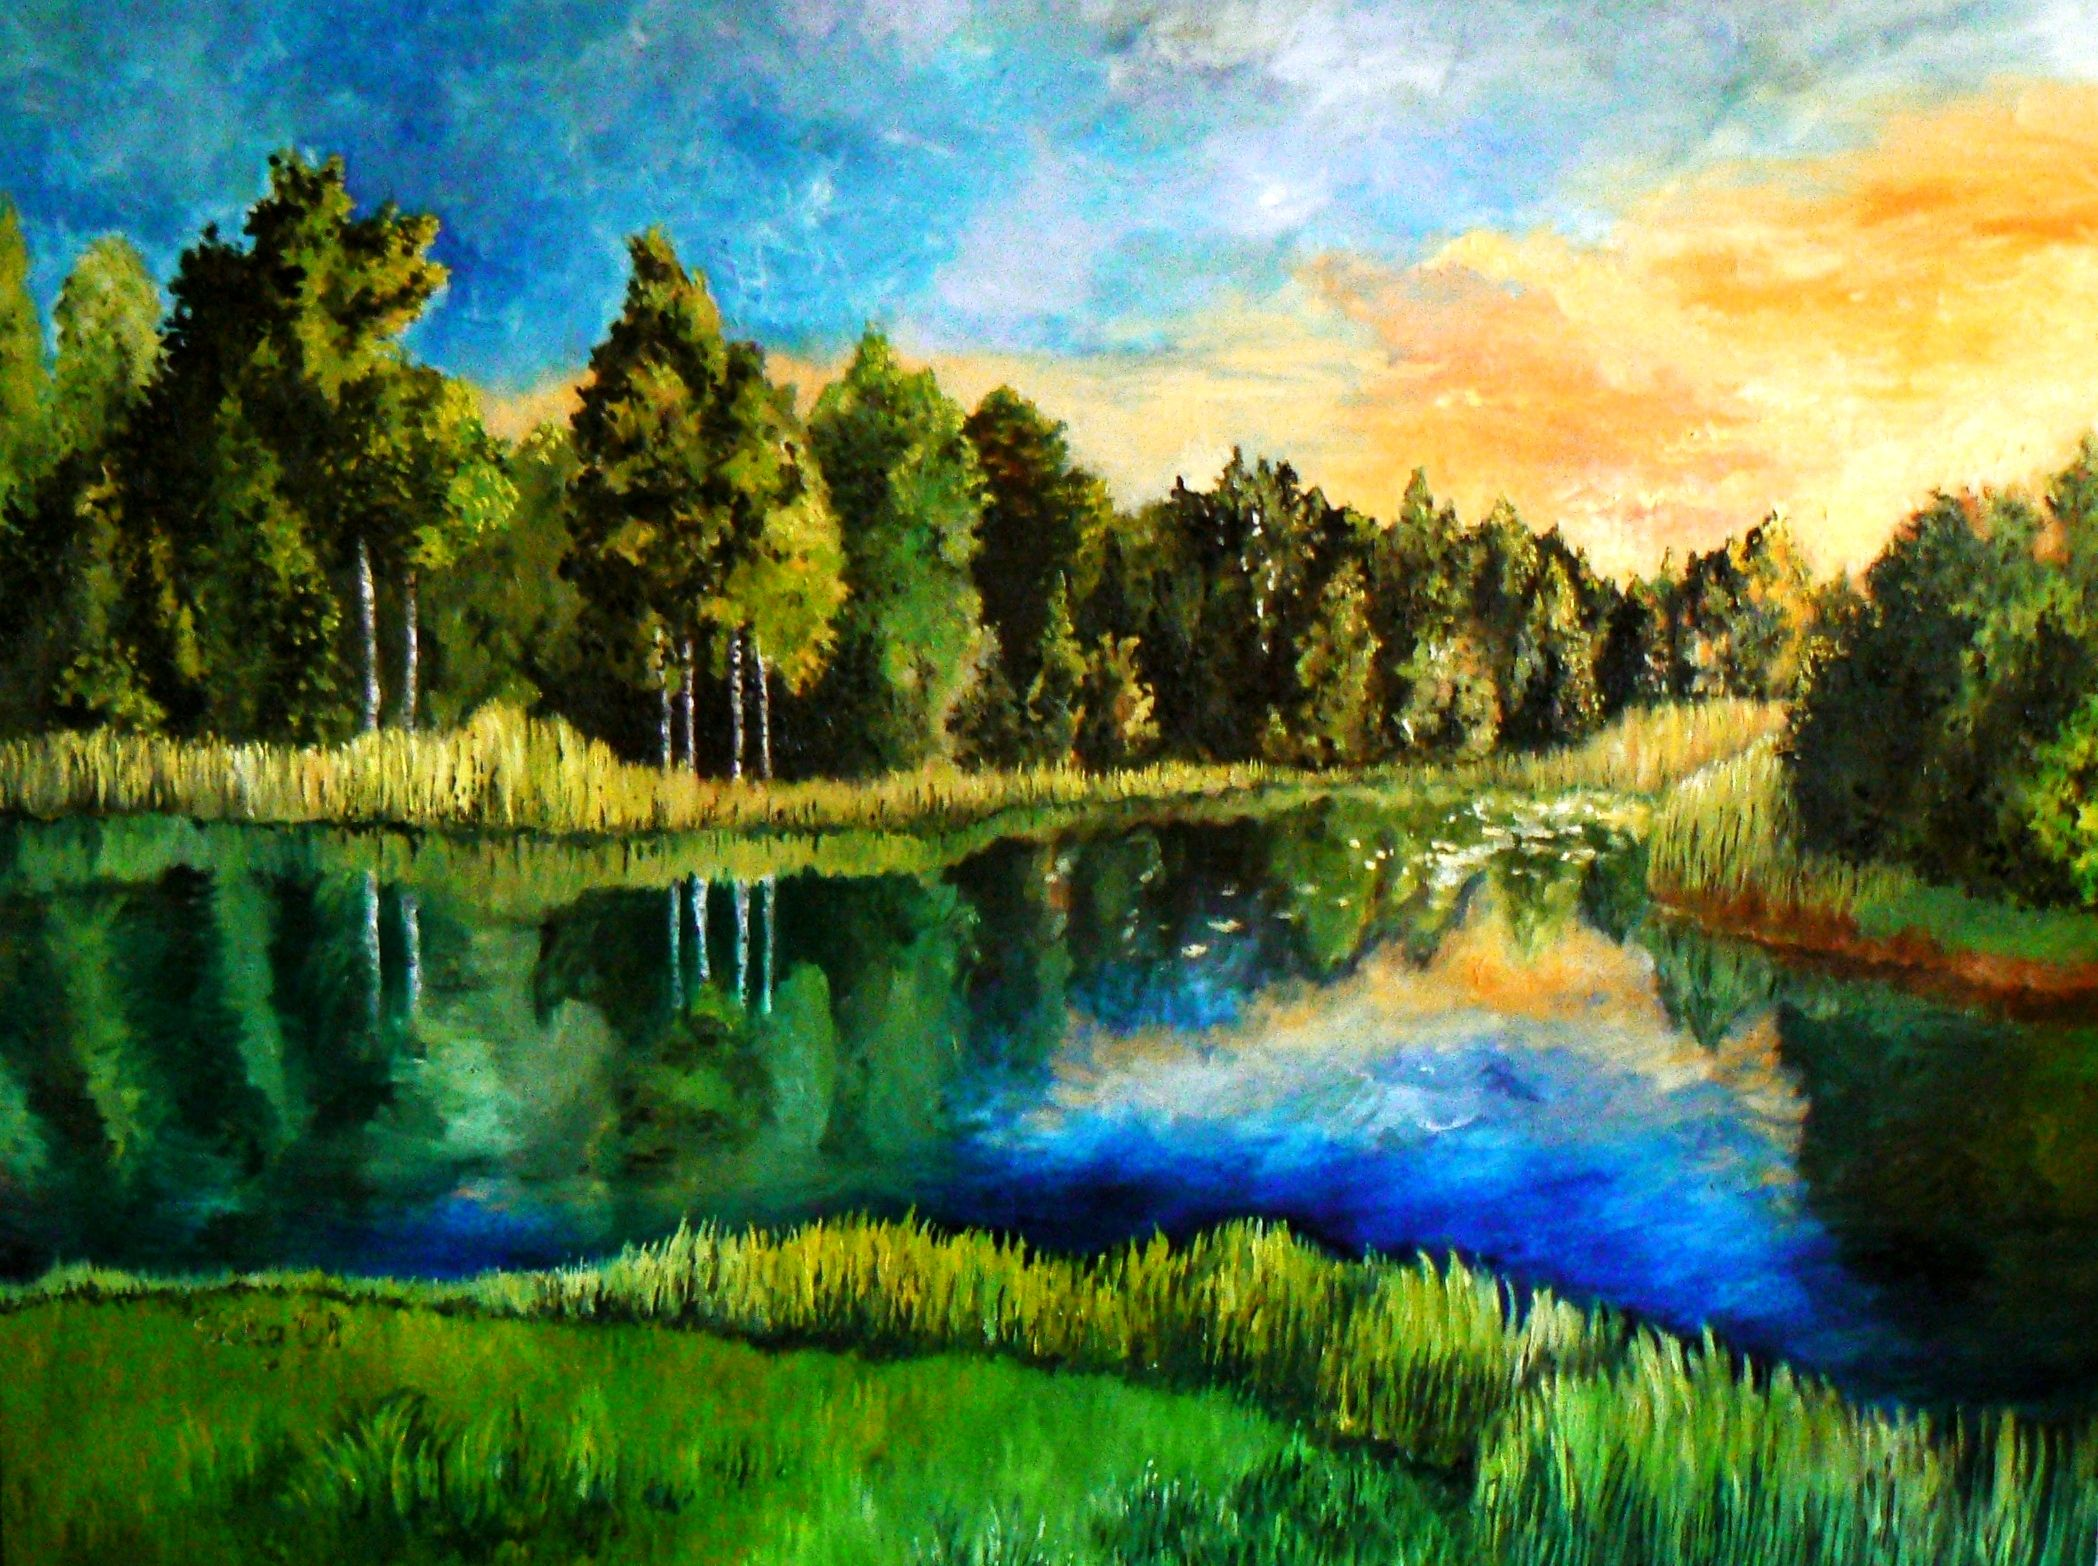 landscape artwork google search art and craft ideas